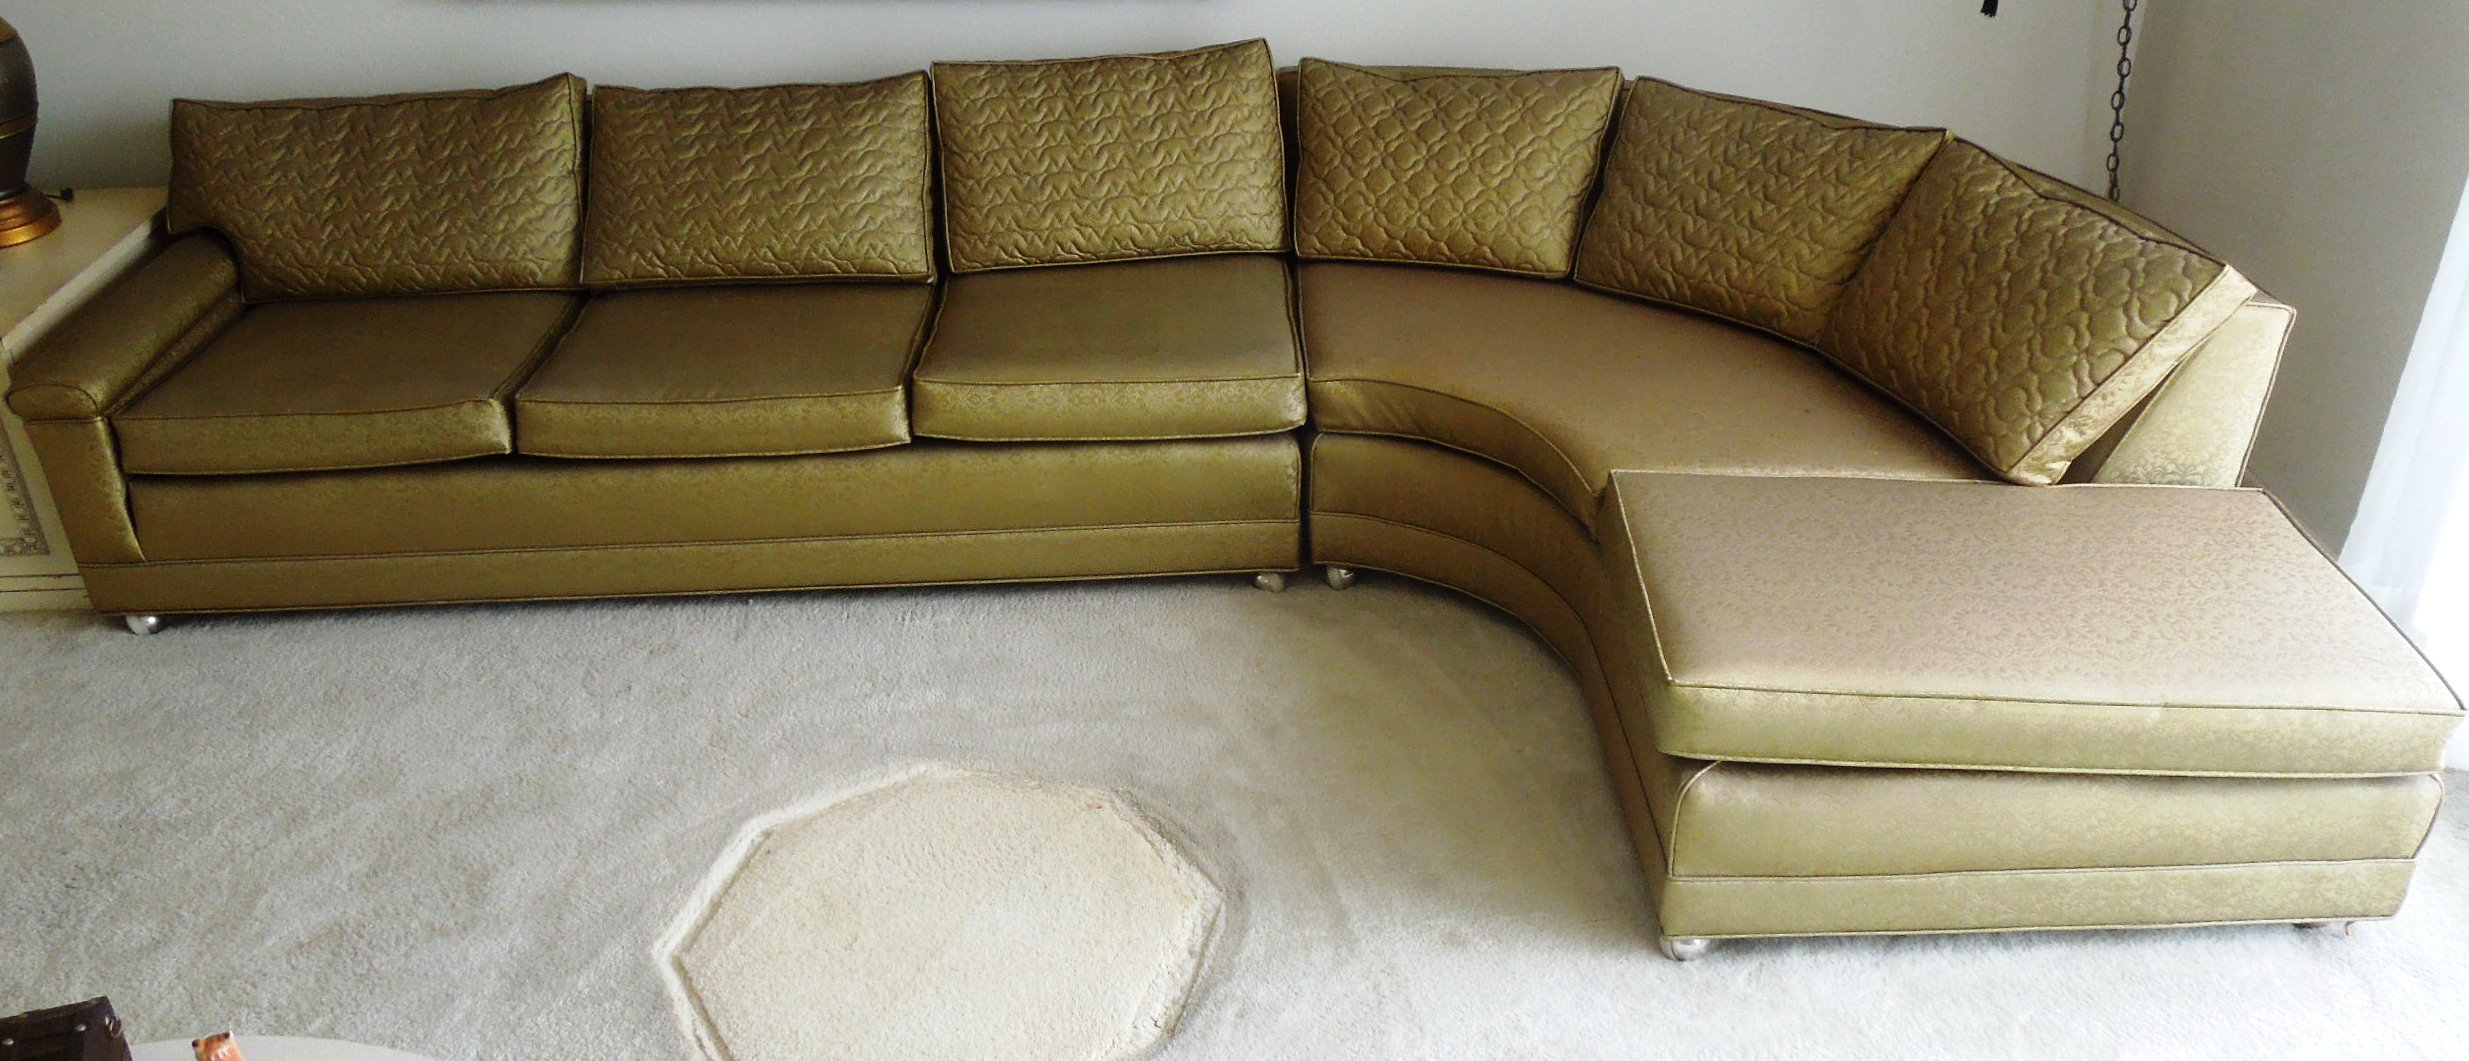 Vintage 1960s Sofa Couch Vinyl Gold Color For Sale Classifieds